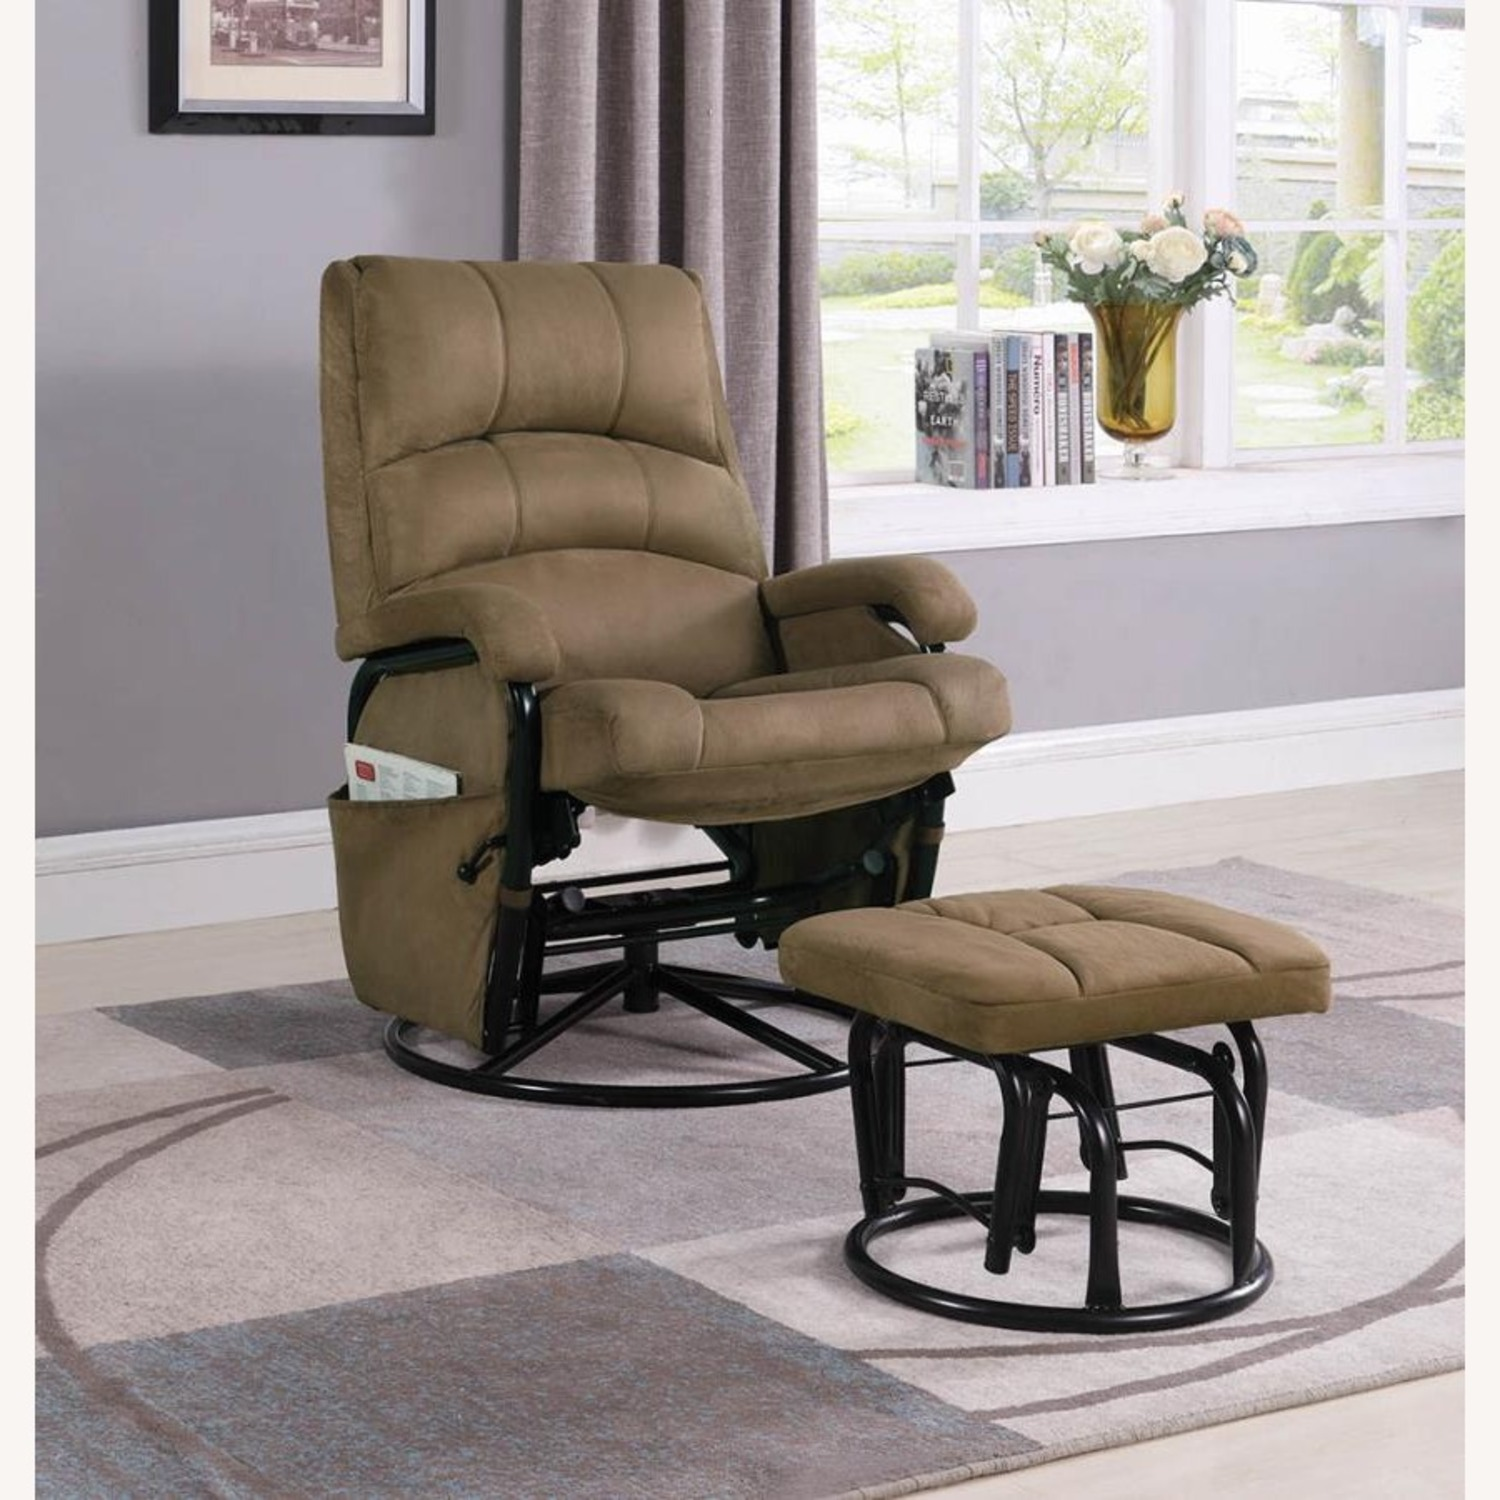 Glider W/ Ottoman In Brown Microfiber Upholstery - image-5